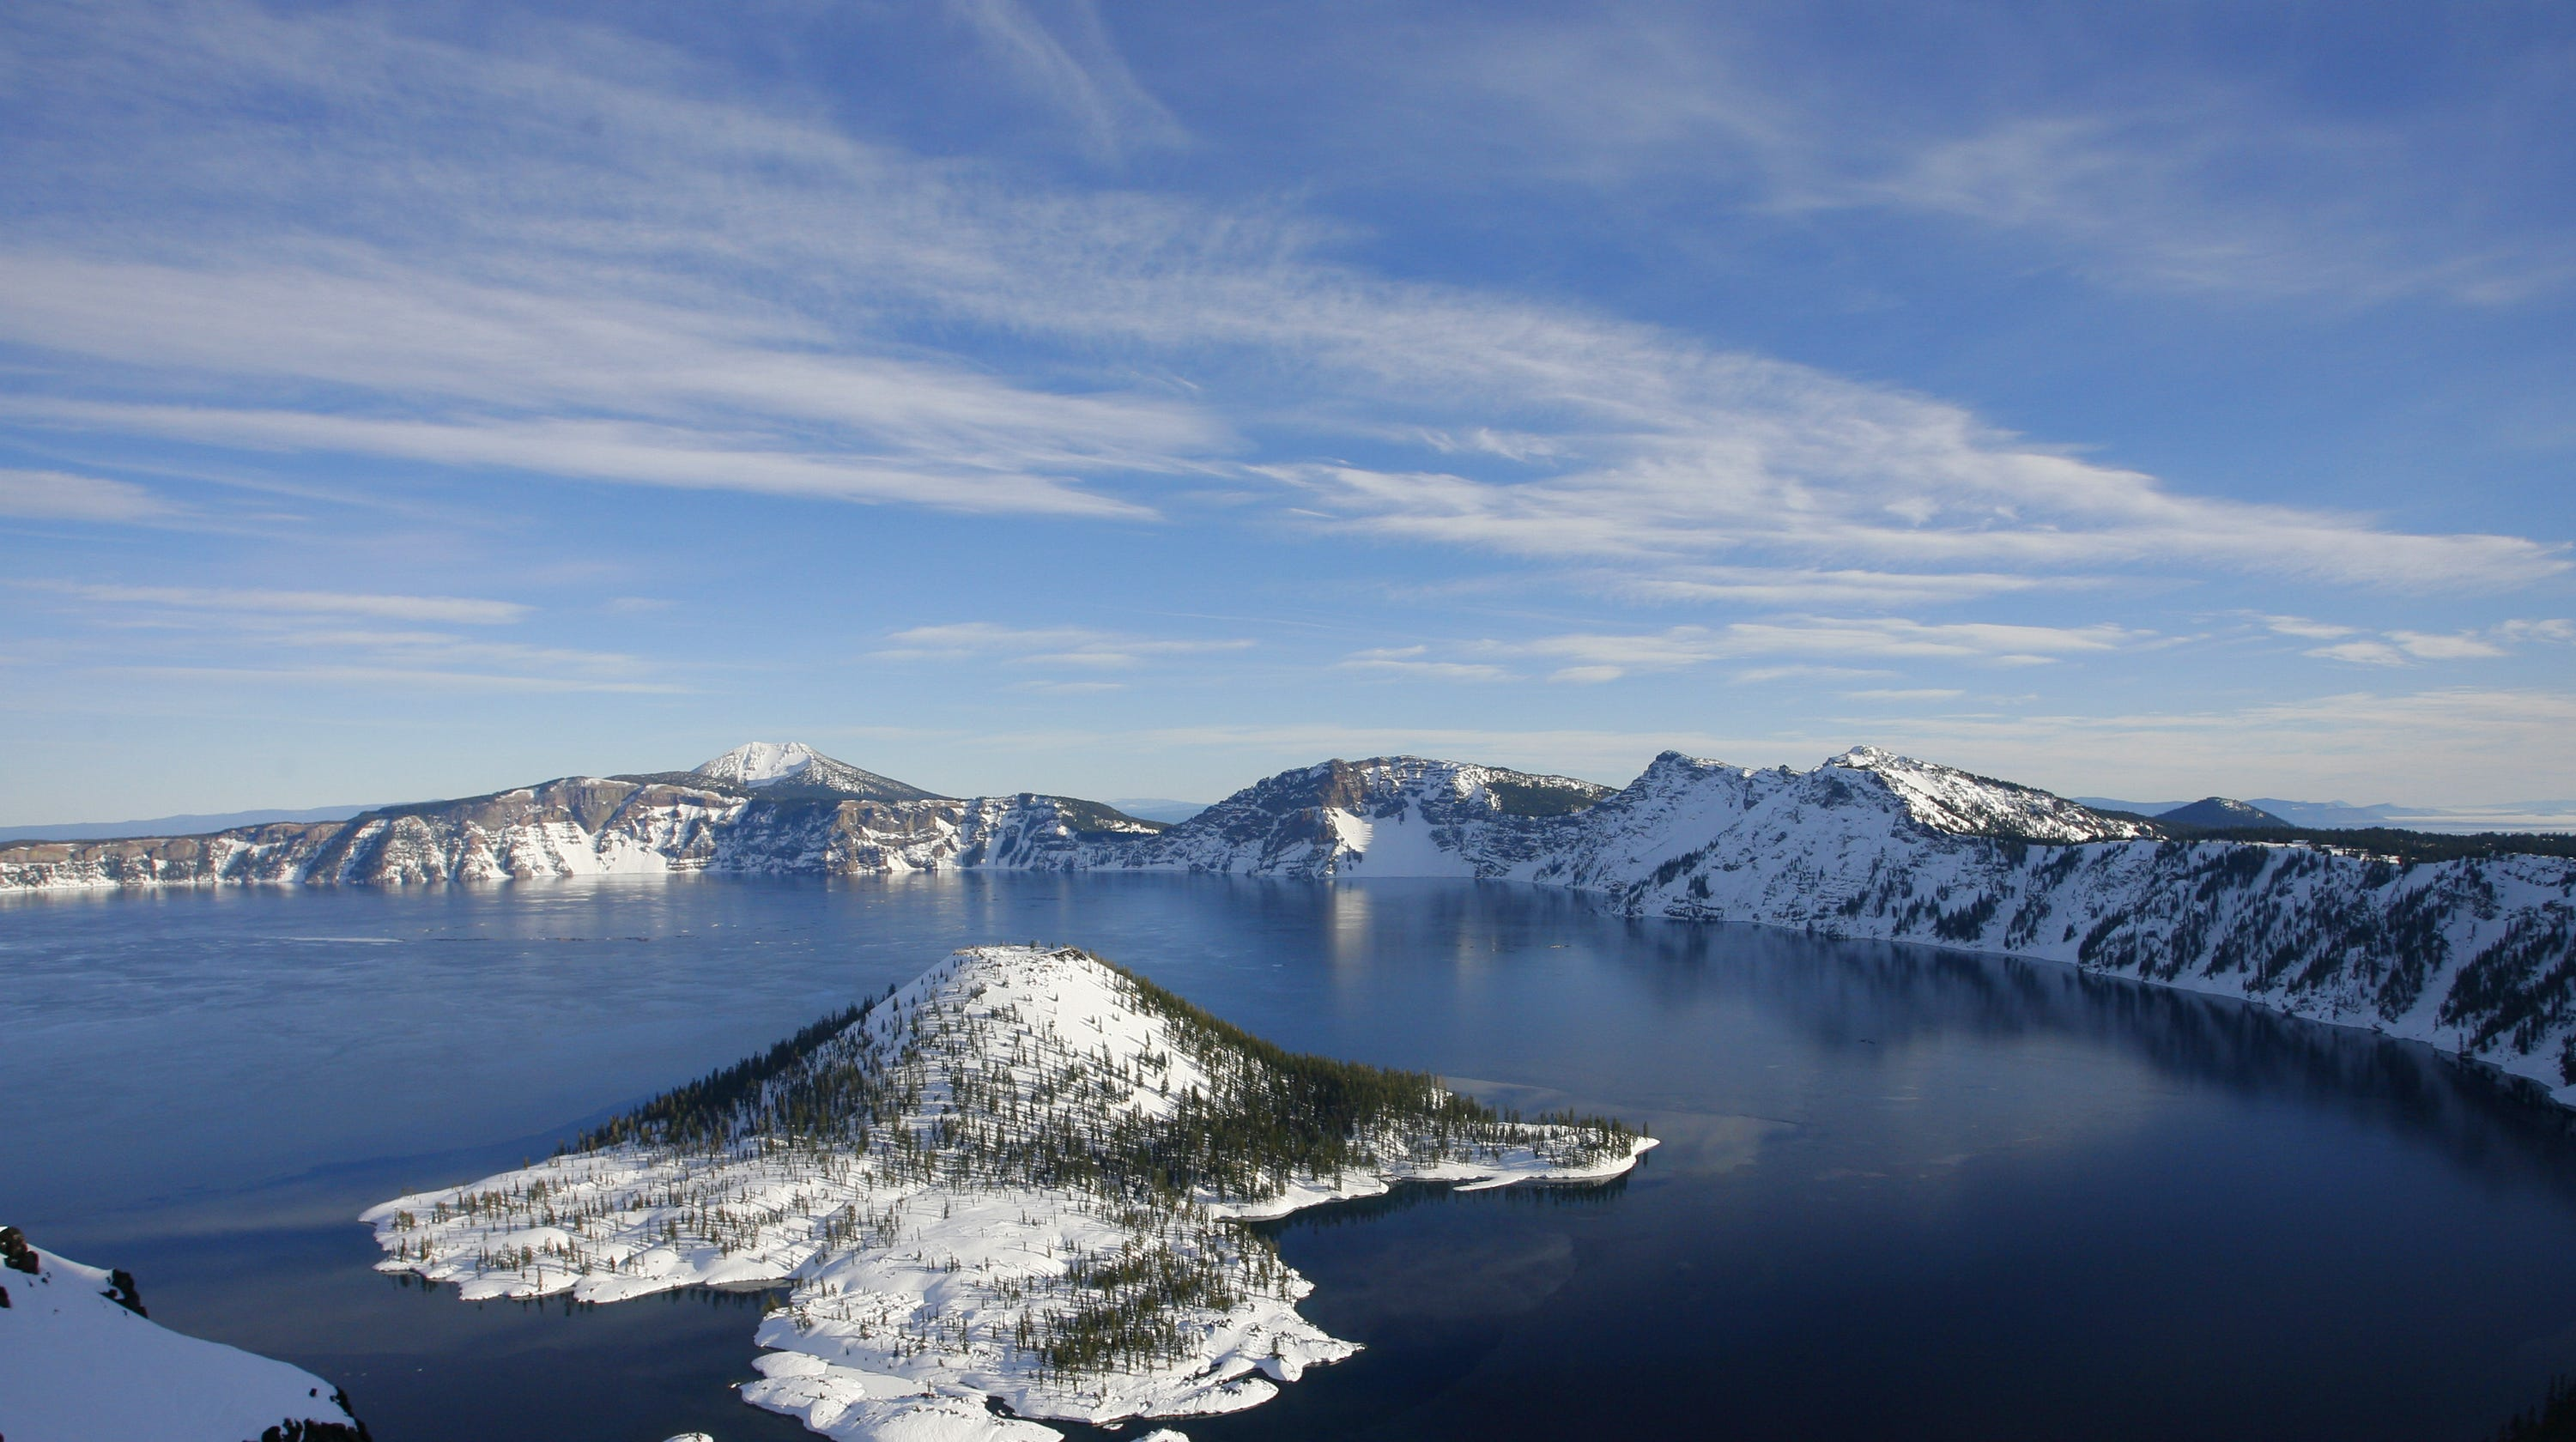 12 Deep Facts About Crater Lake National Park | Mental Floss